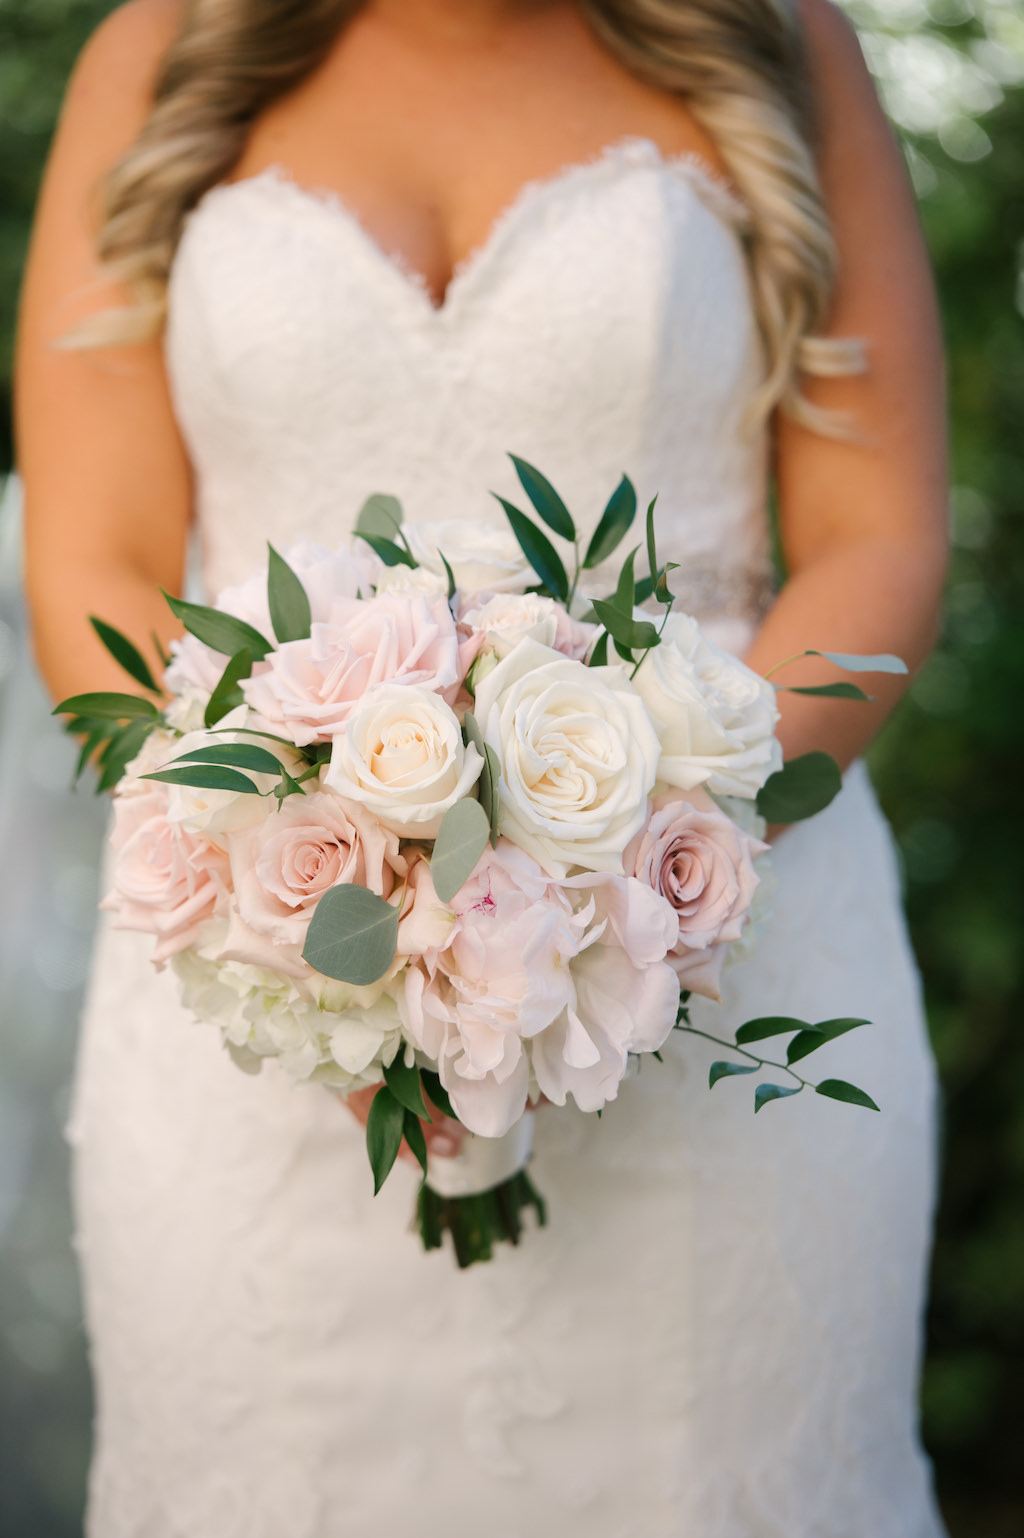 Bridal Portrait With Blush And White Rose And Peony Bouquet With Greenery Marry Me Tampa Bay Local Real Wedding Inspiration Vendor Recommendation Reviews